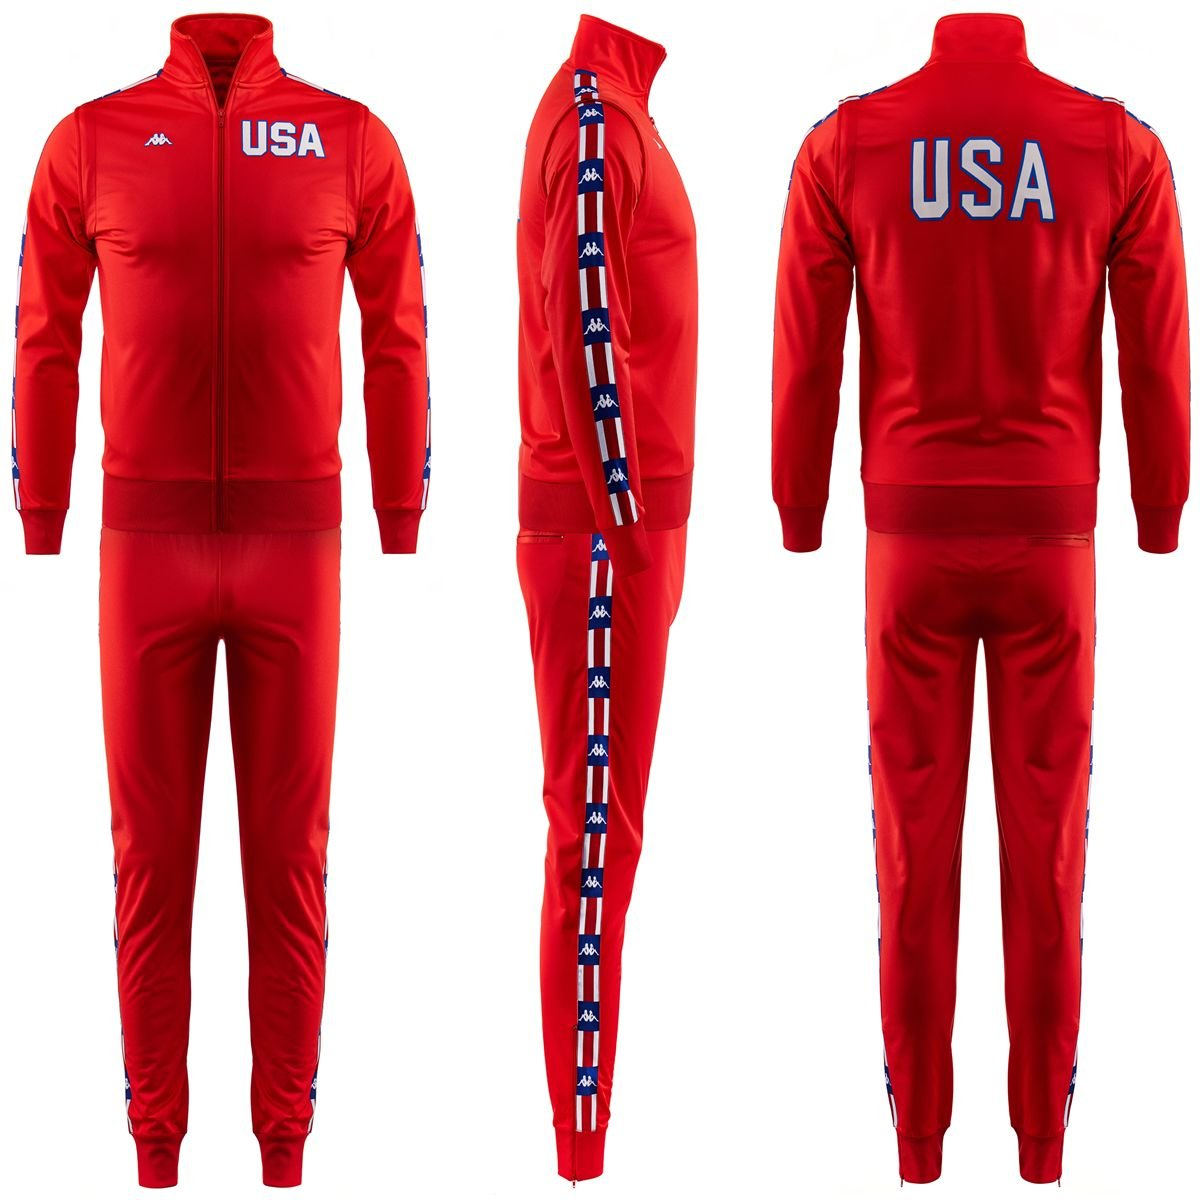 27f03d18ad AUTHENTIC LA84 TRACKSUIT FLAME RED 2016 Kappa XL FLAME RED: Amazon ...